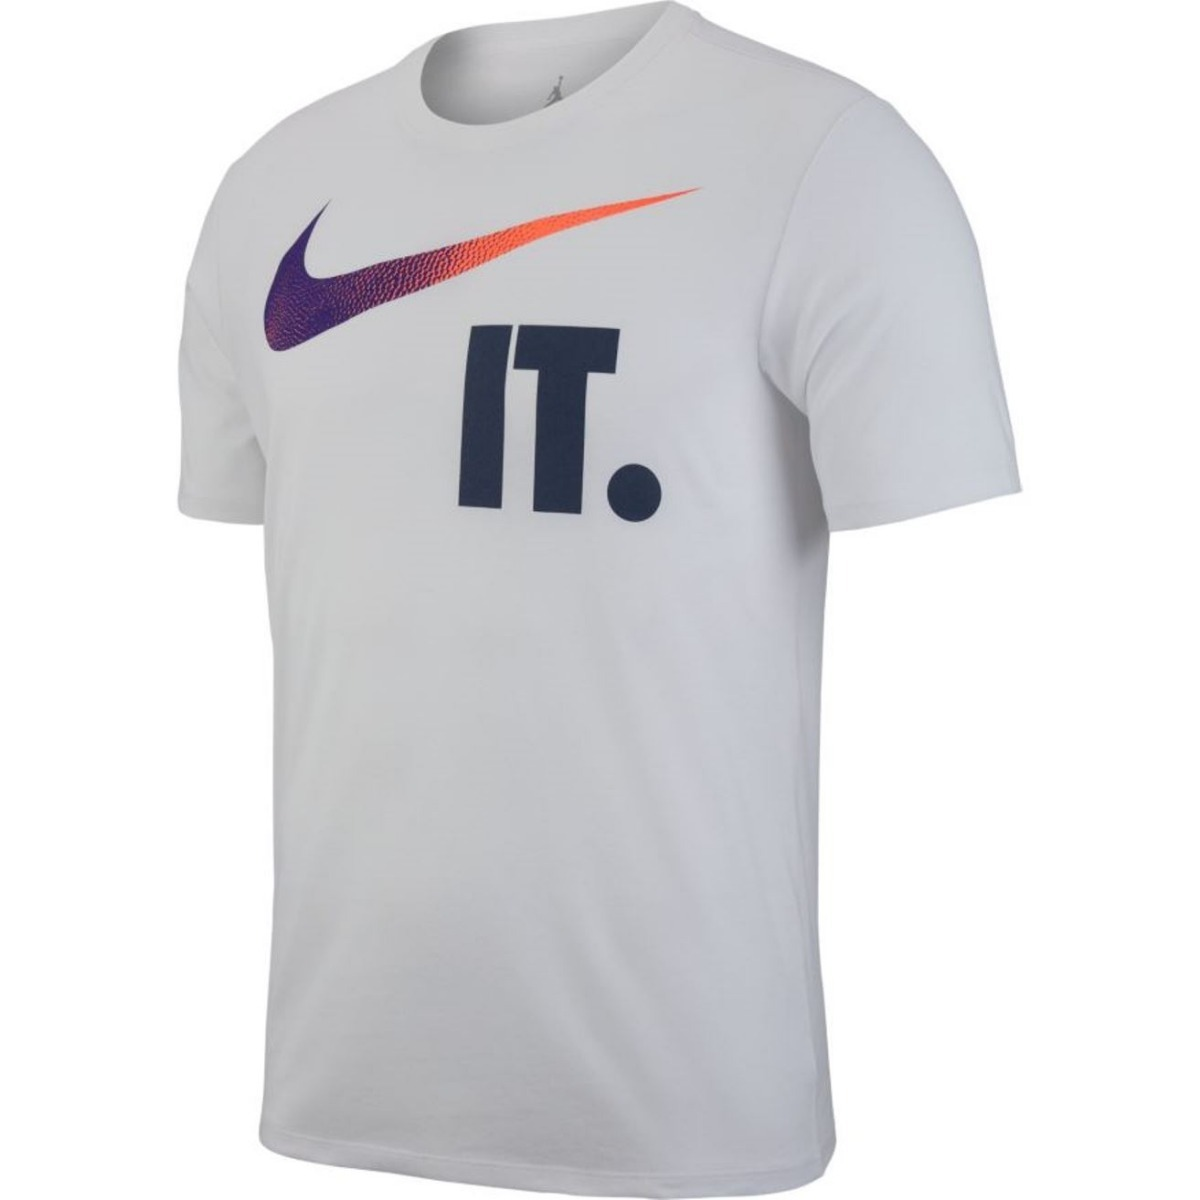 3d55dfcf41 camiseta nike dry check it masculina - original. Carregando zoom.